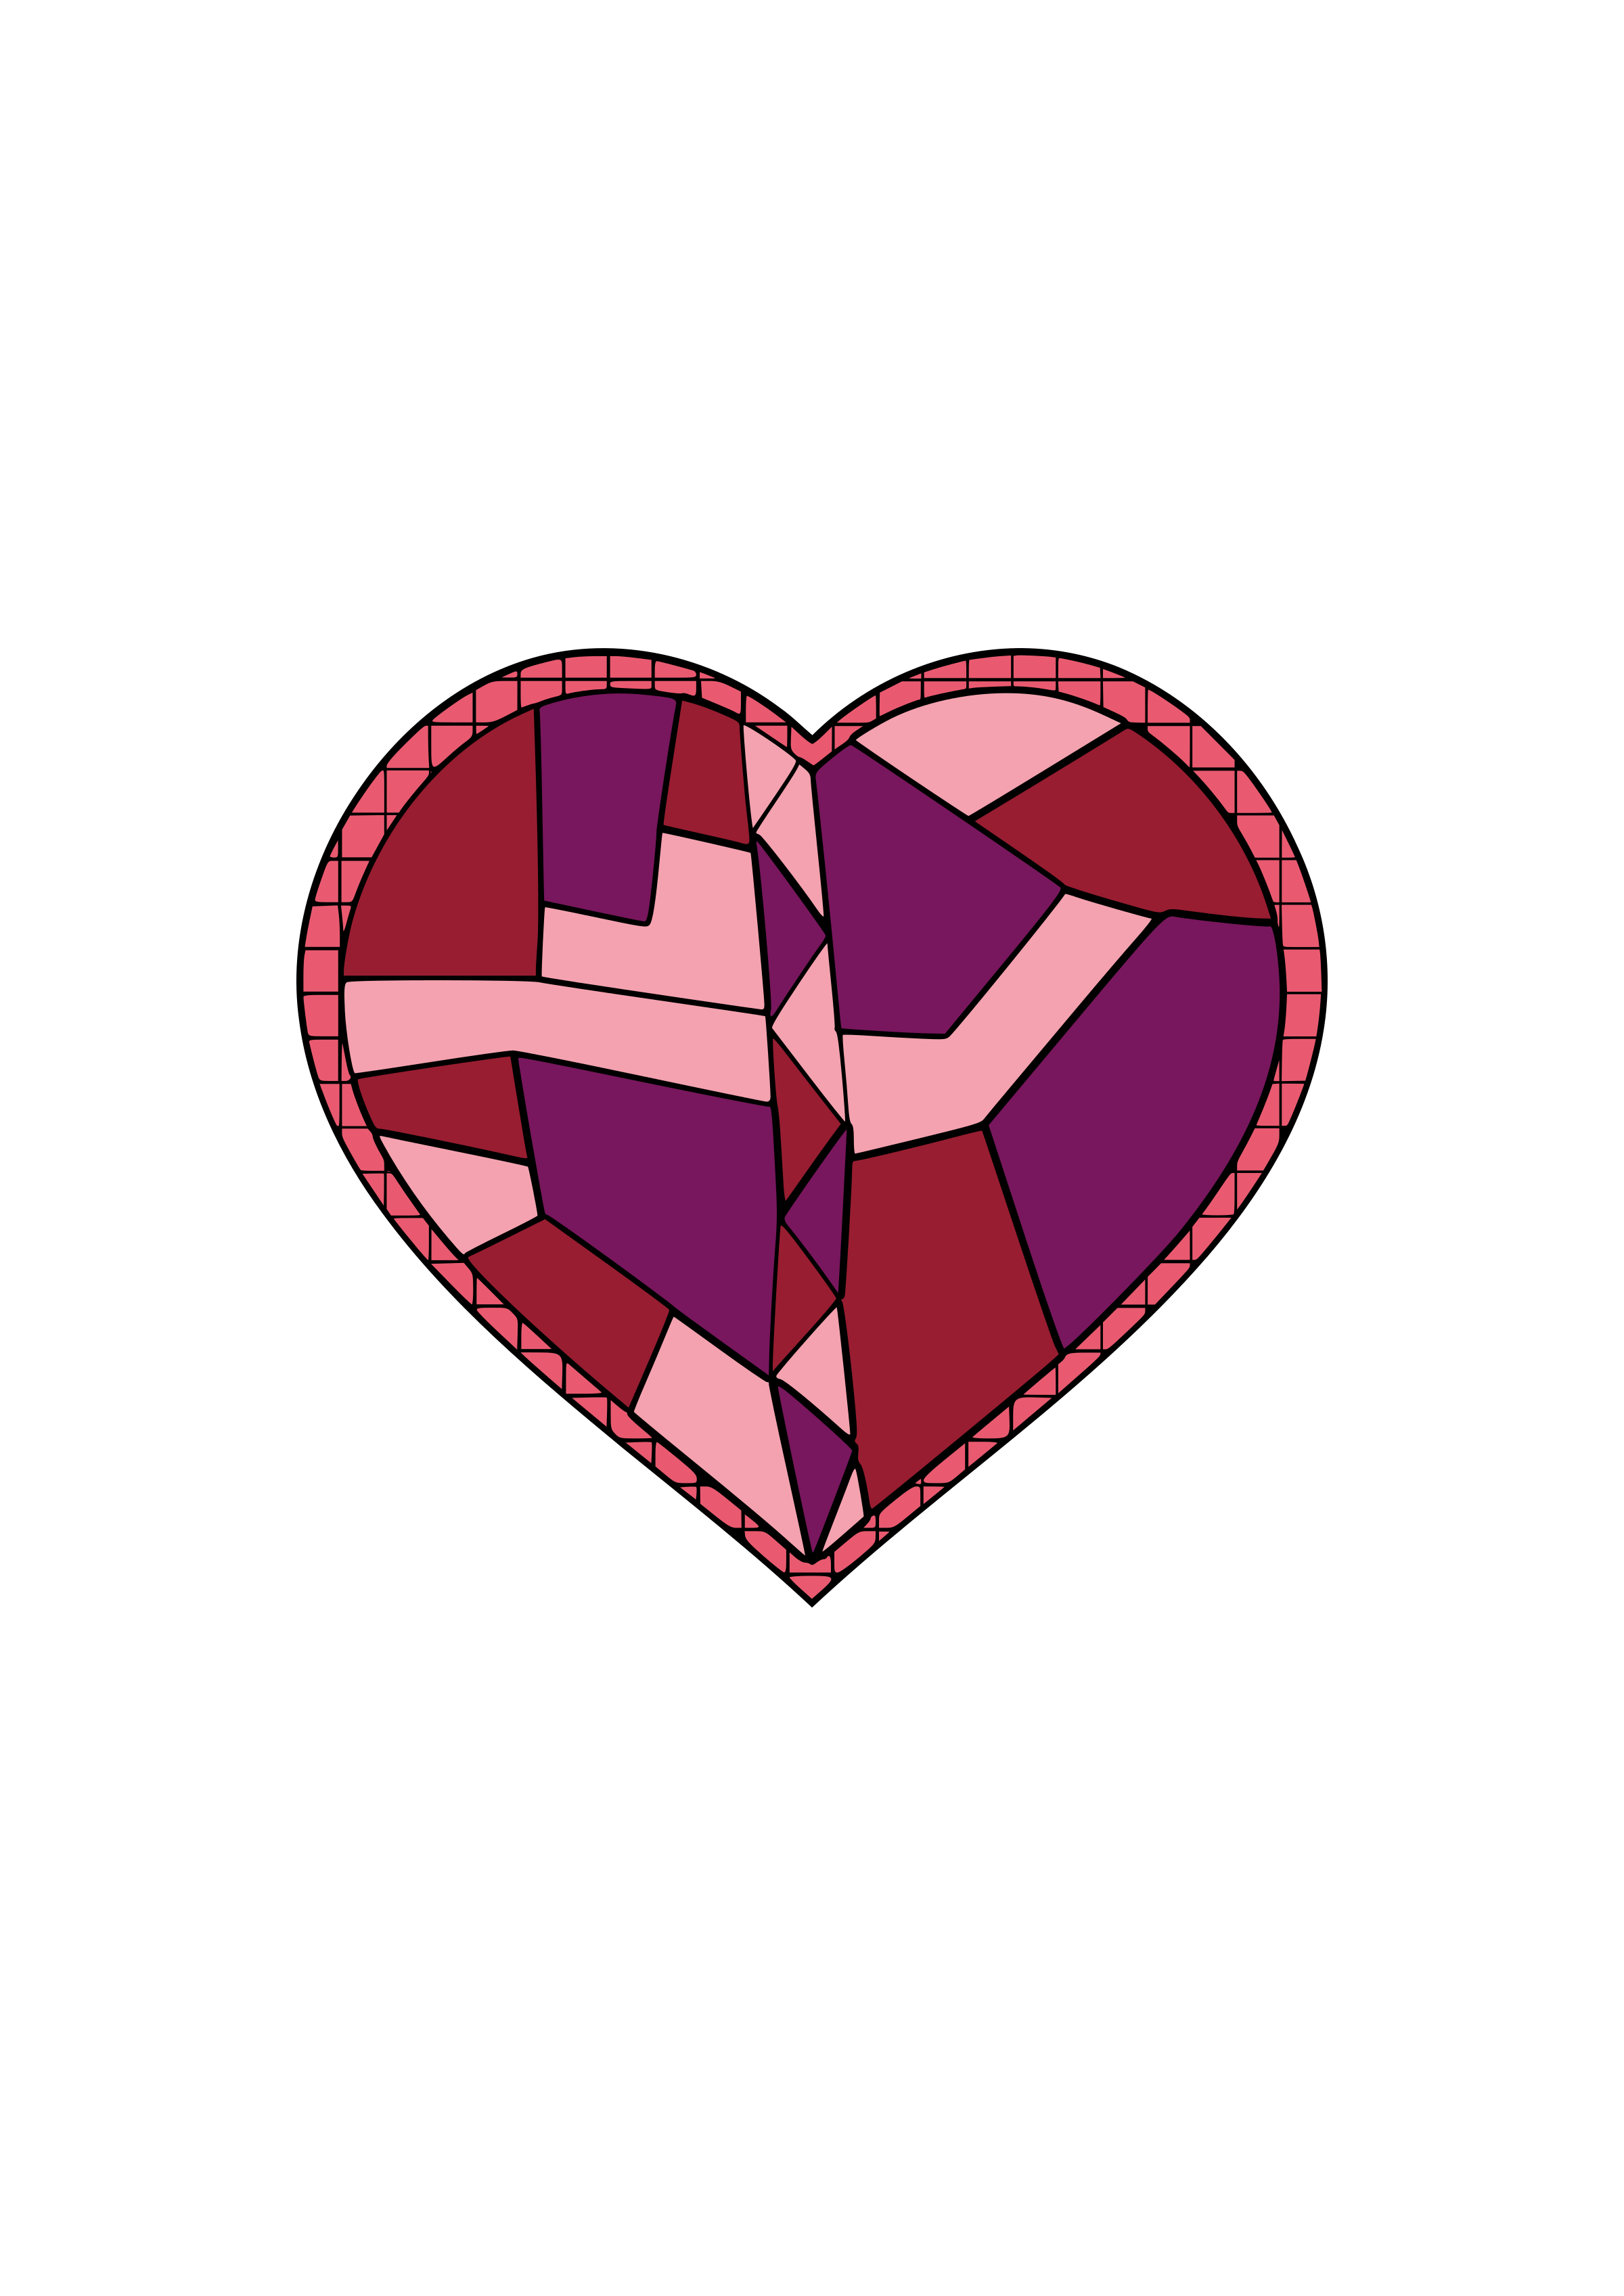 Glass heart png. Clipart stained big image